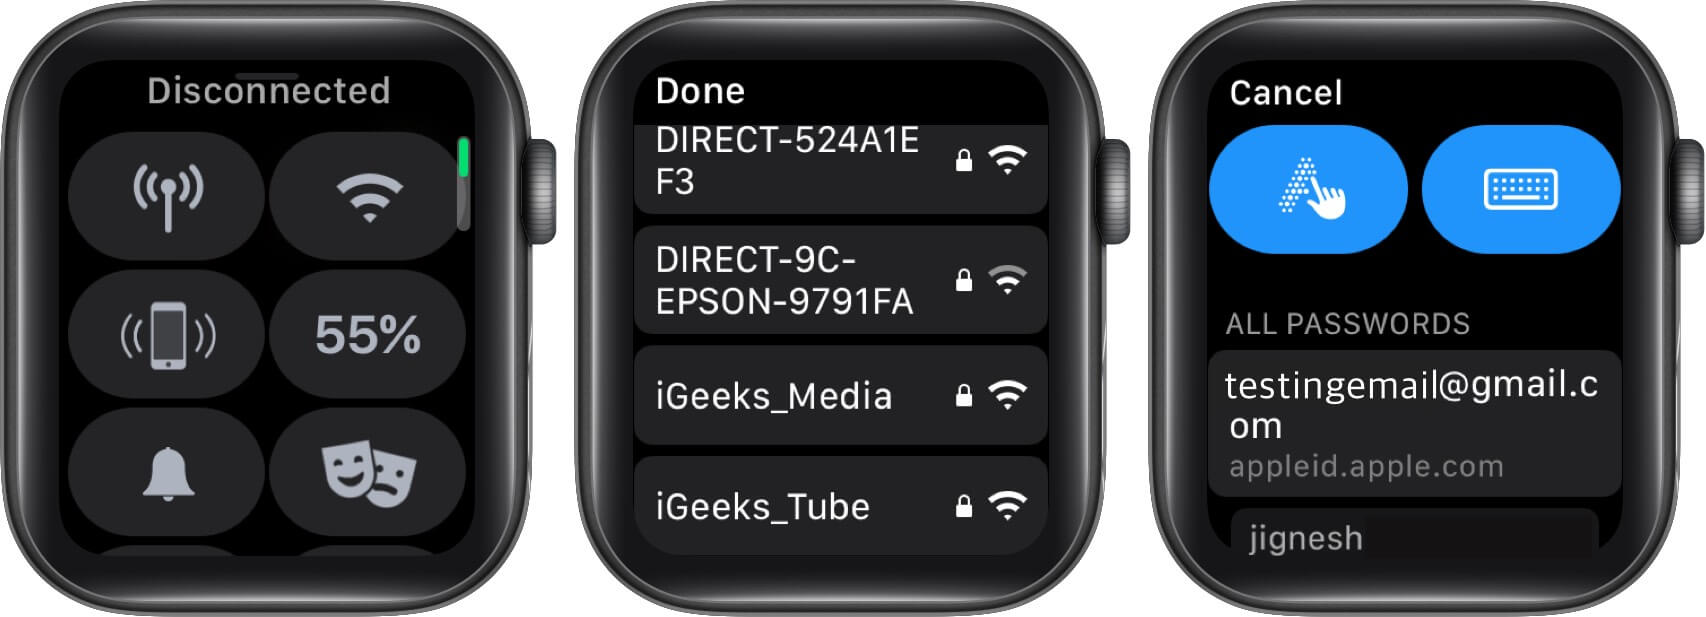 Turn off Wi-Fi and reconnect with the same Wi-Fi on the Apple Watch